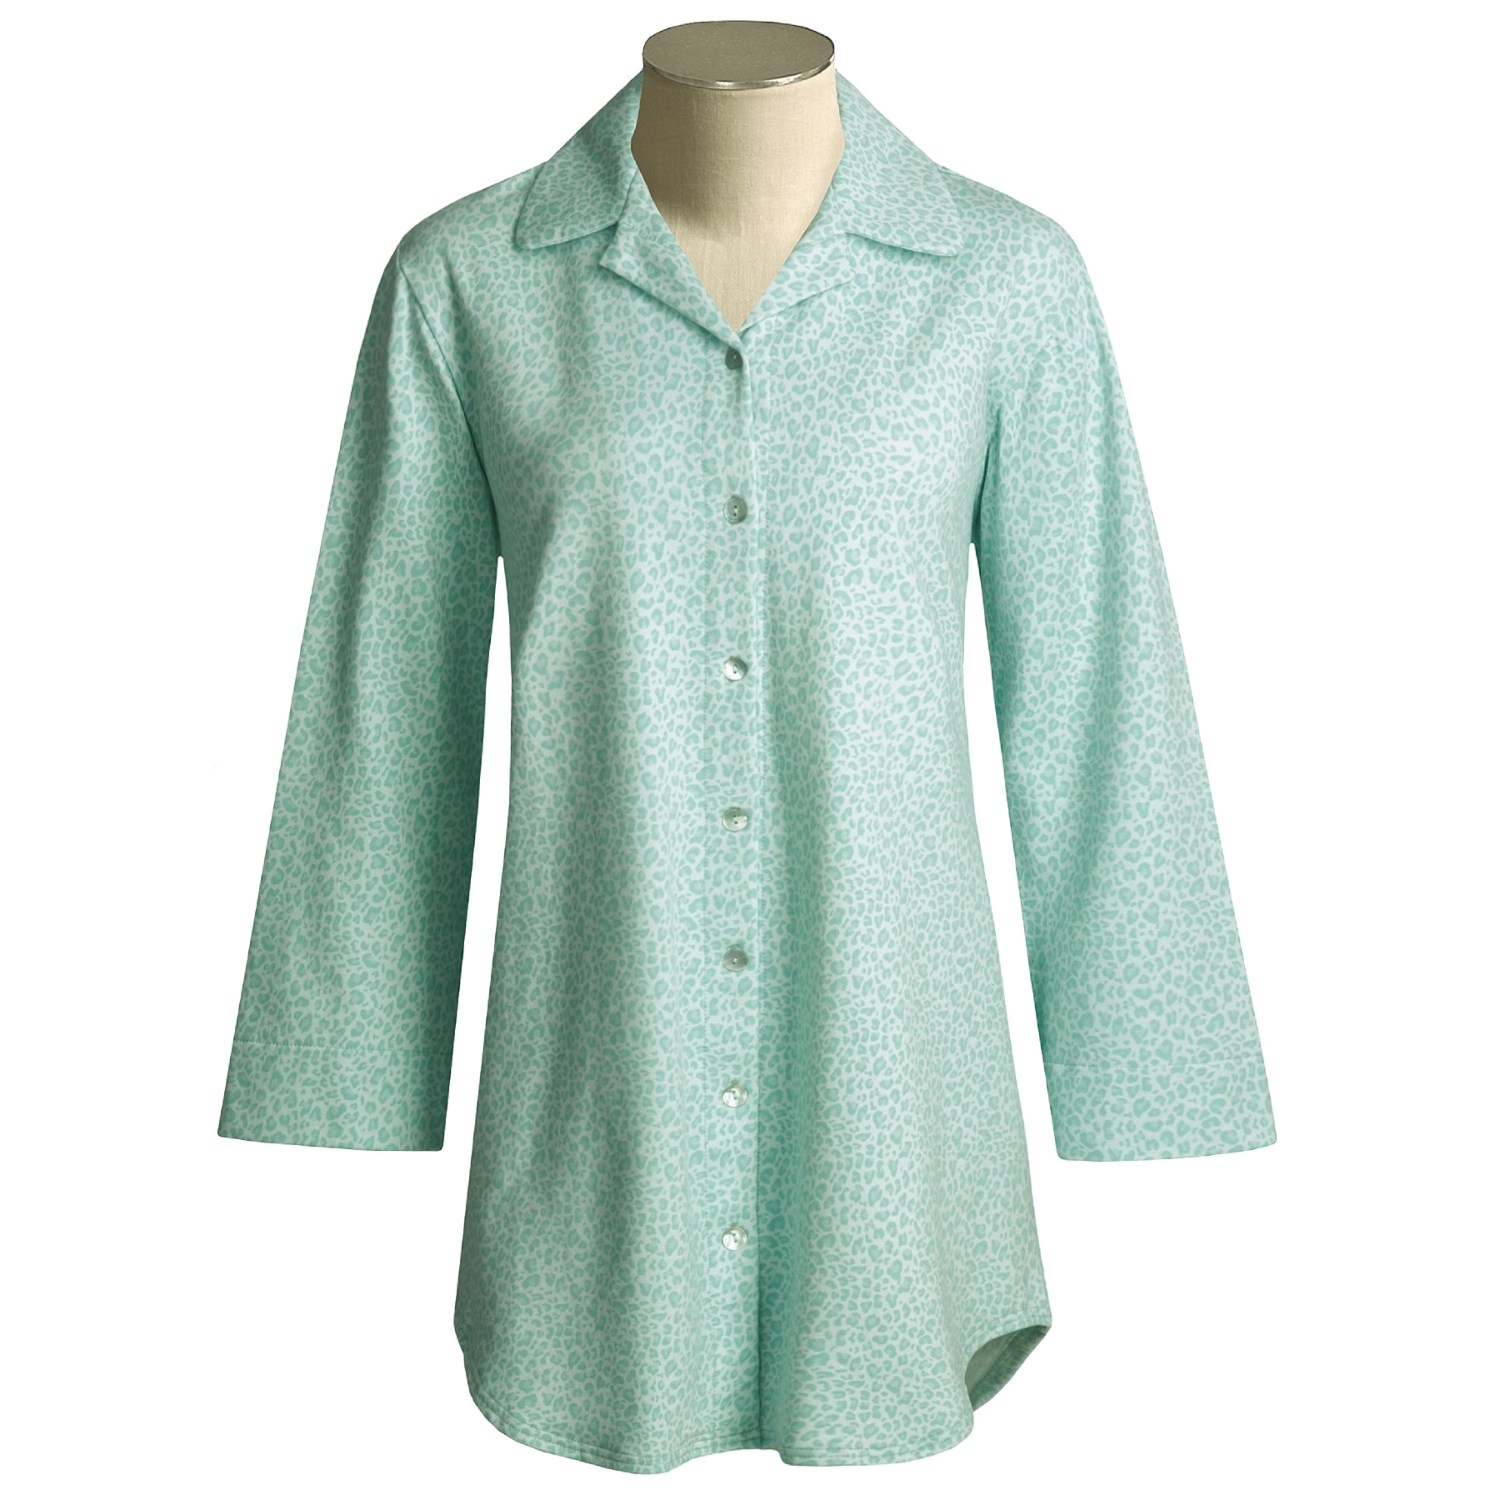 Womens nightgowns in hard-to-find and classic designs for every season. Browse our selection of flannel sleepwear and cotton nightgowns for women. Eileen West Moonlight Sonata Short Cotton Nightgown. Eileen West Moonlight Sonata Short Cotton Nightgown - Long Henley Nightshirt. Long Henley Nightshirt - -.